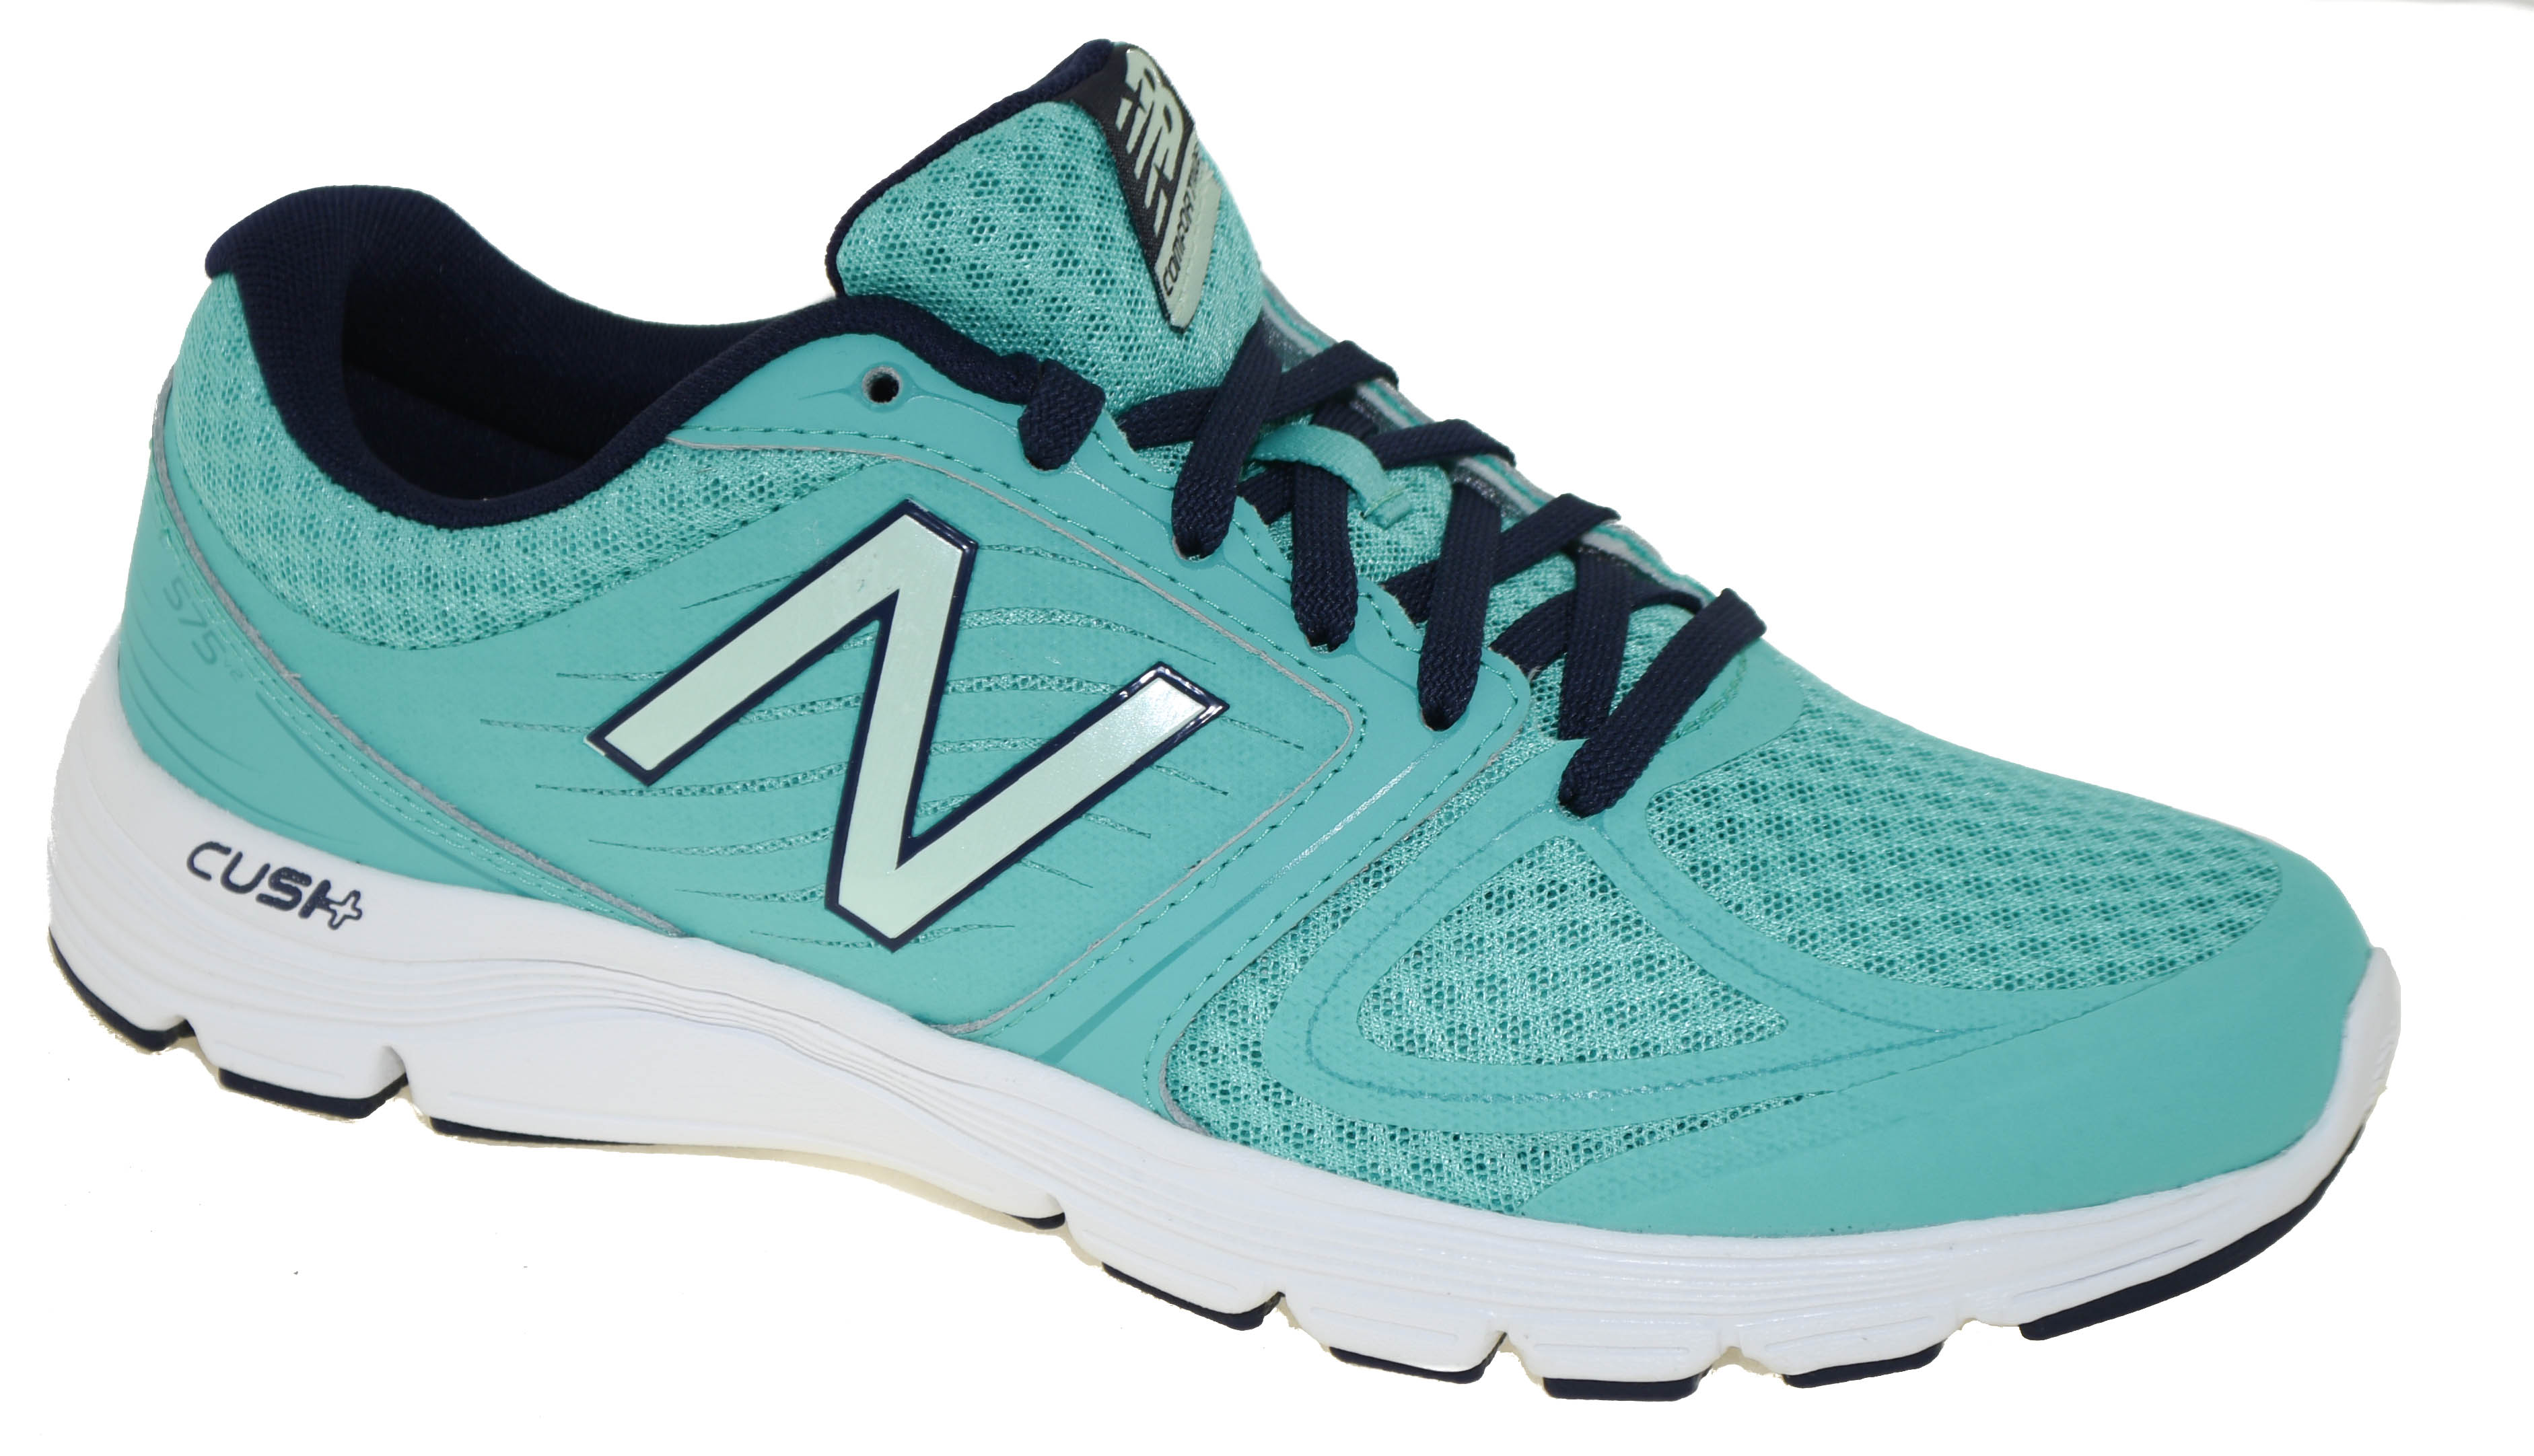 online store 04893 a0cf9 Details about New Balance Women's 575 v2 Running Shoes Style W575LG2